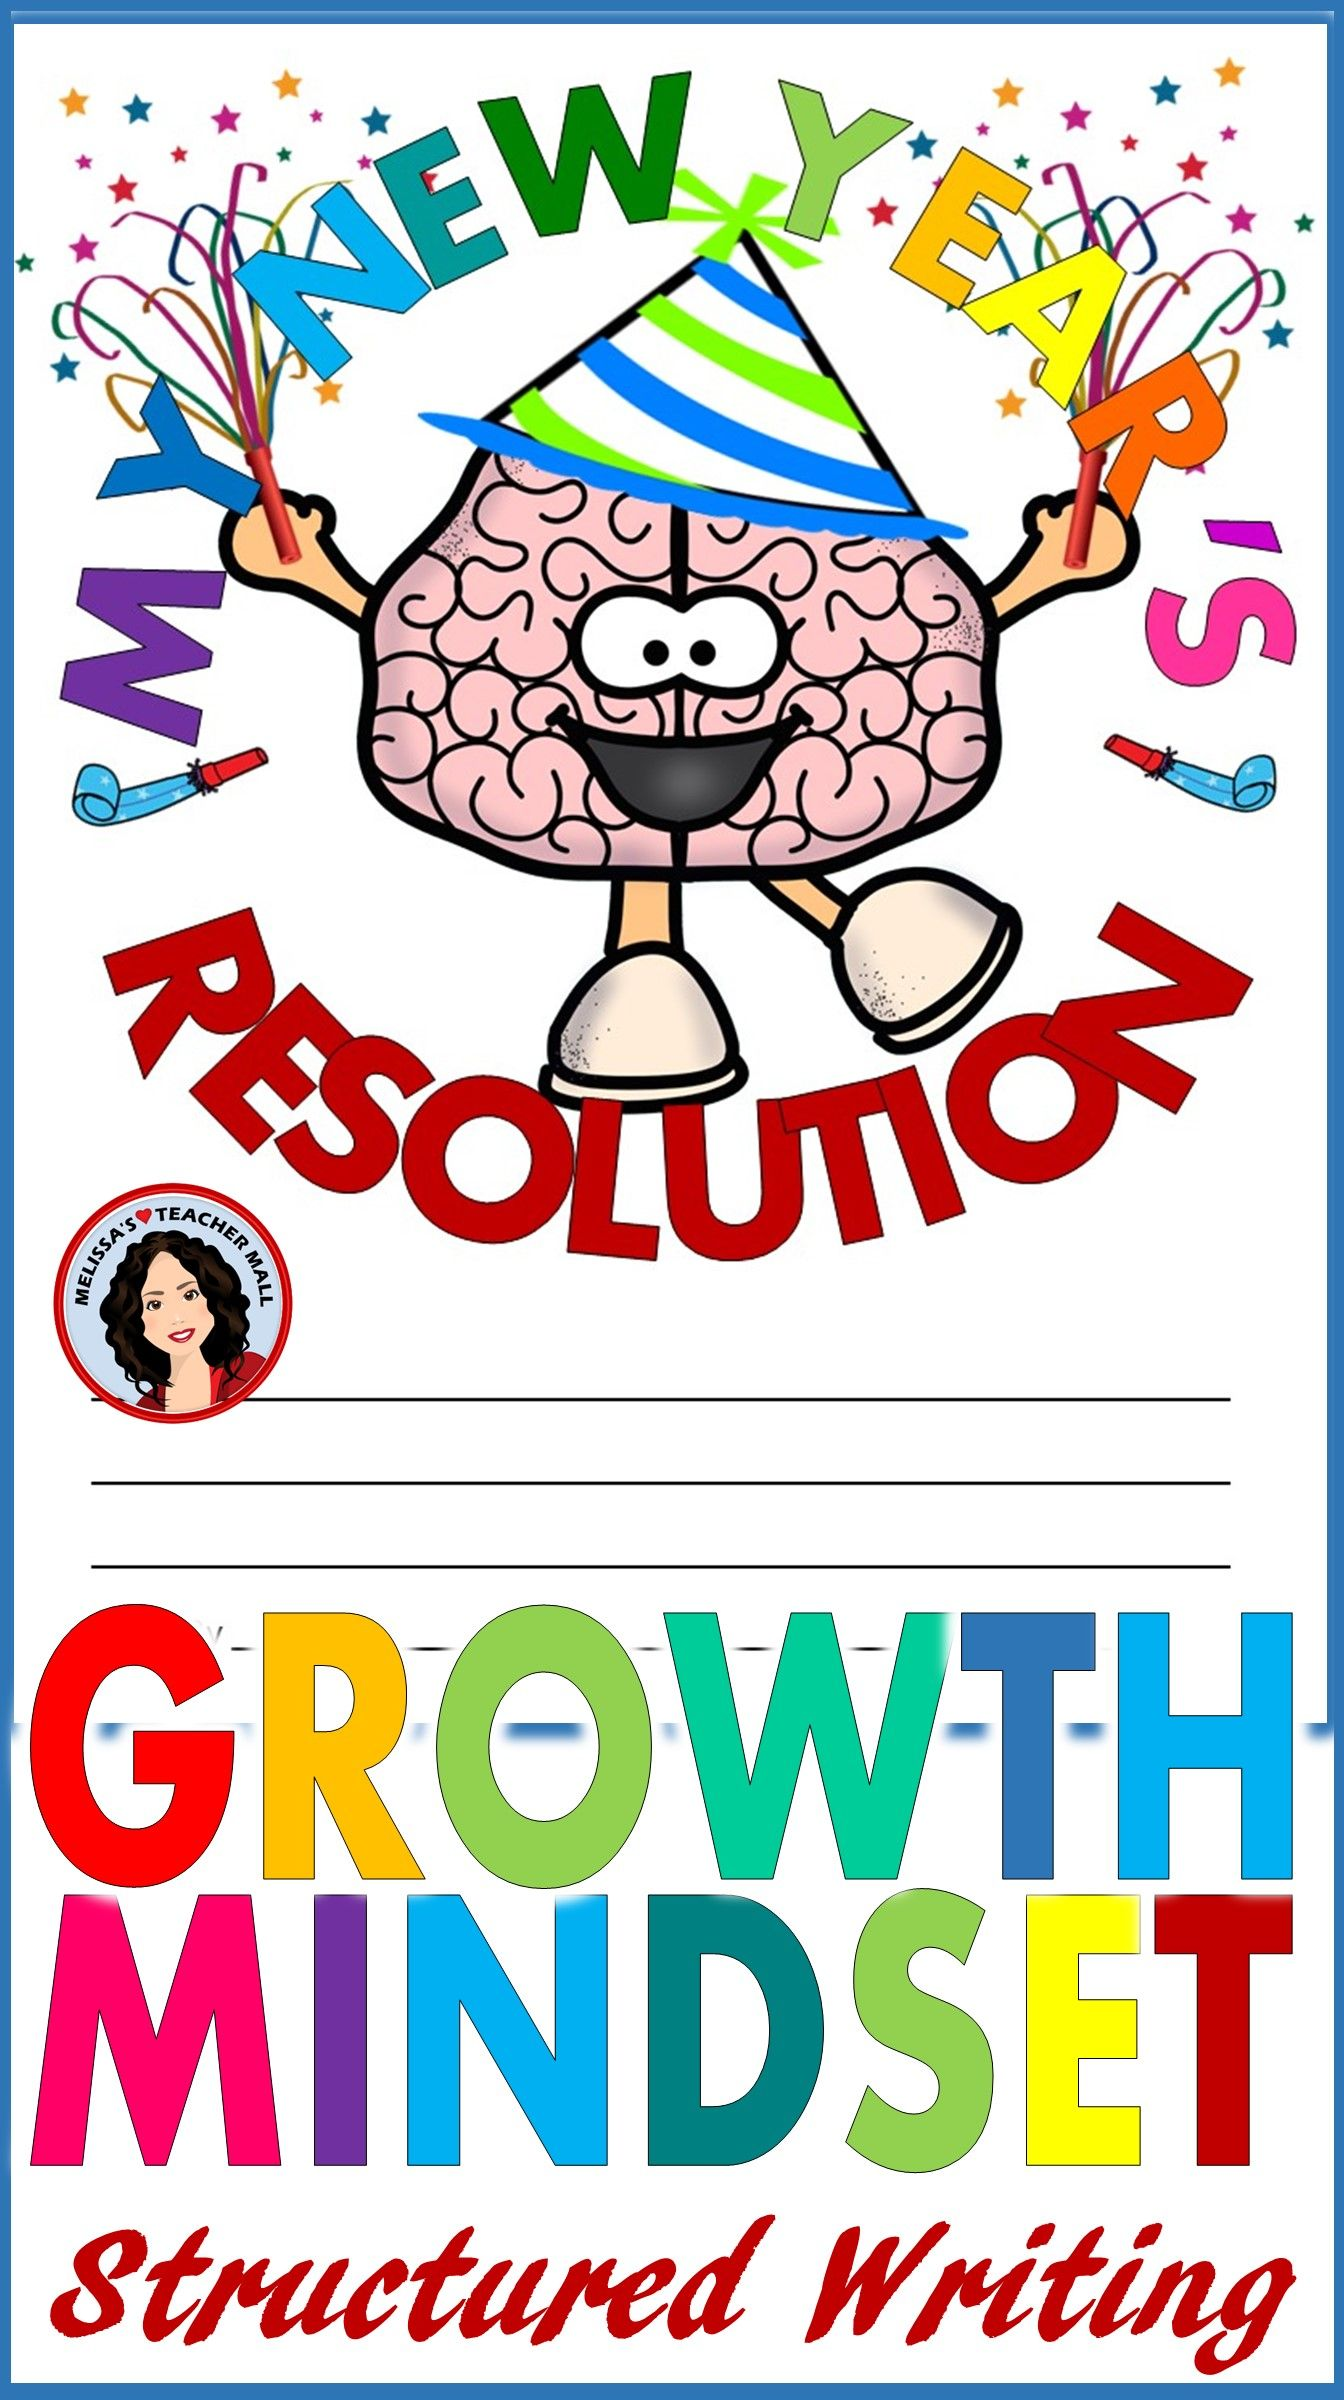 Years activity using growth. Meditation clipart new year's resolution